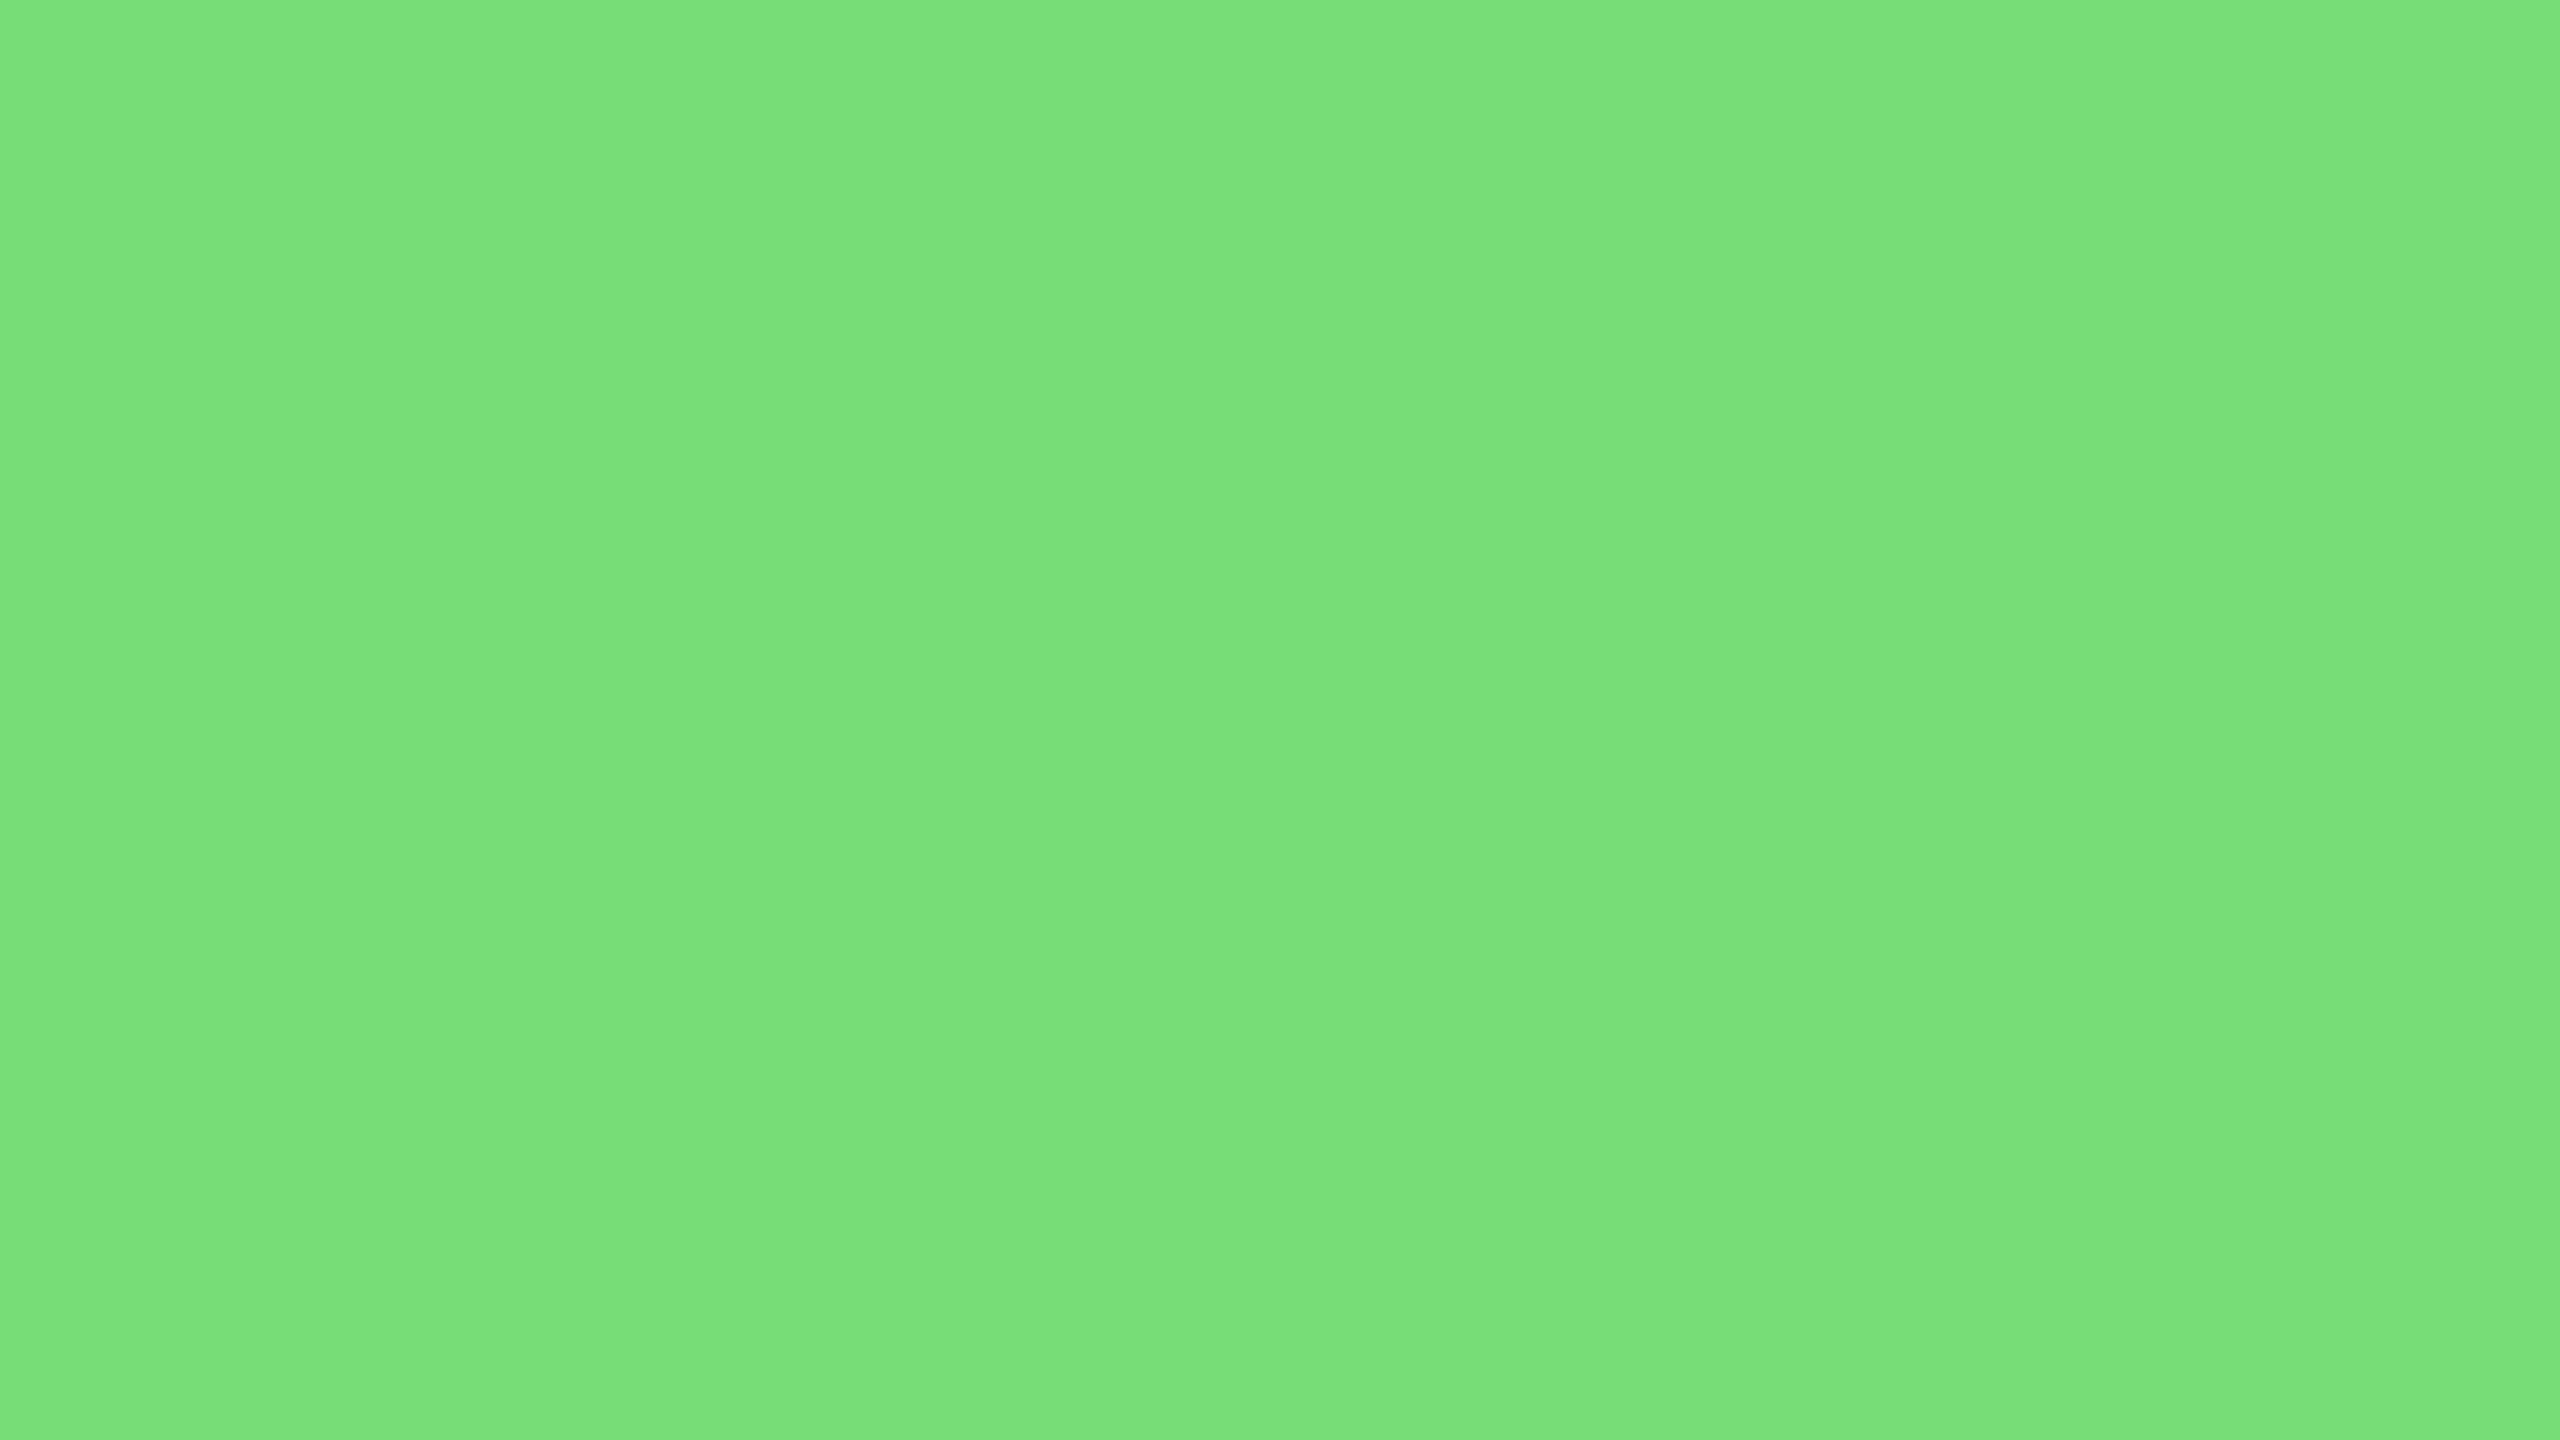 2560x1440 Pastel Green Solid Color Background